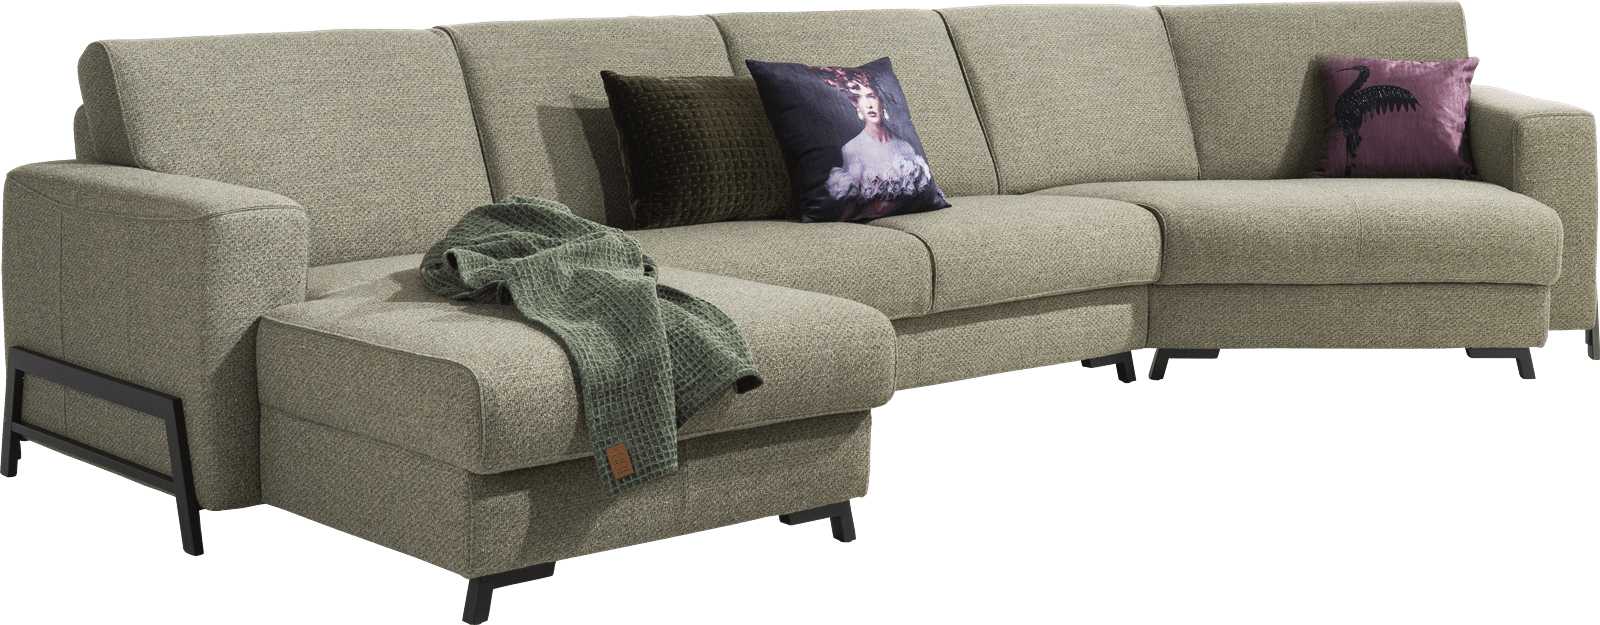 Henders and Hazel - Bergen - Industrie - Sofas - lounge-end rechts